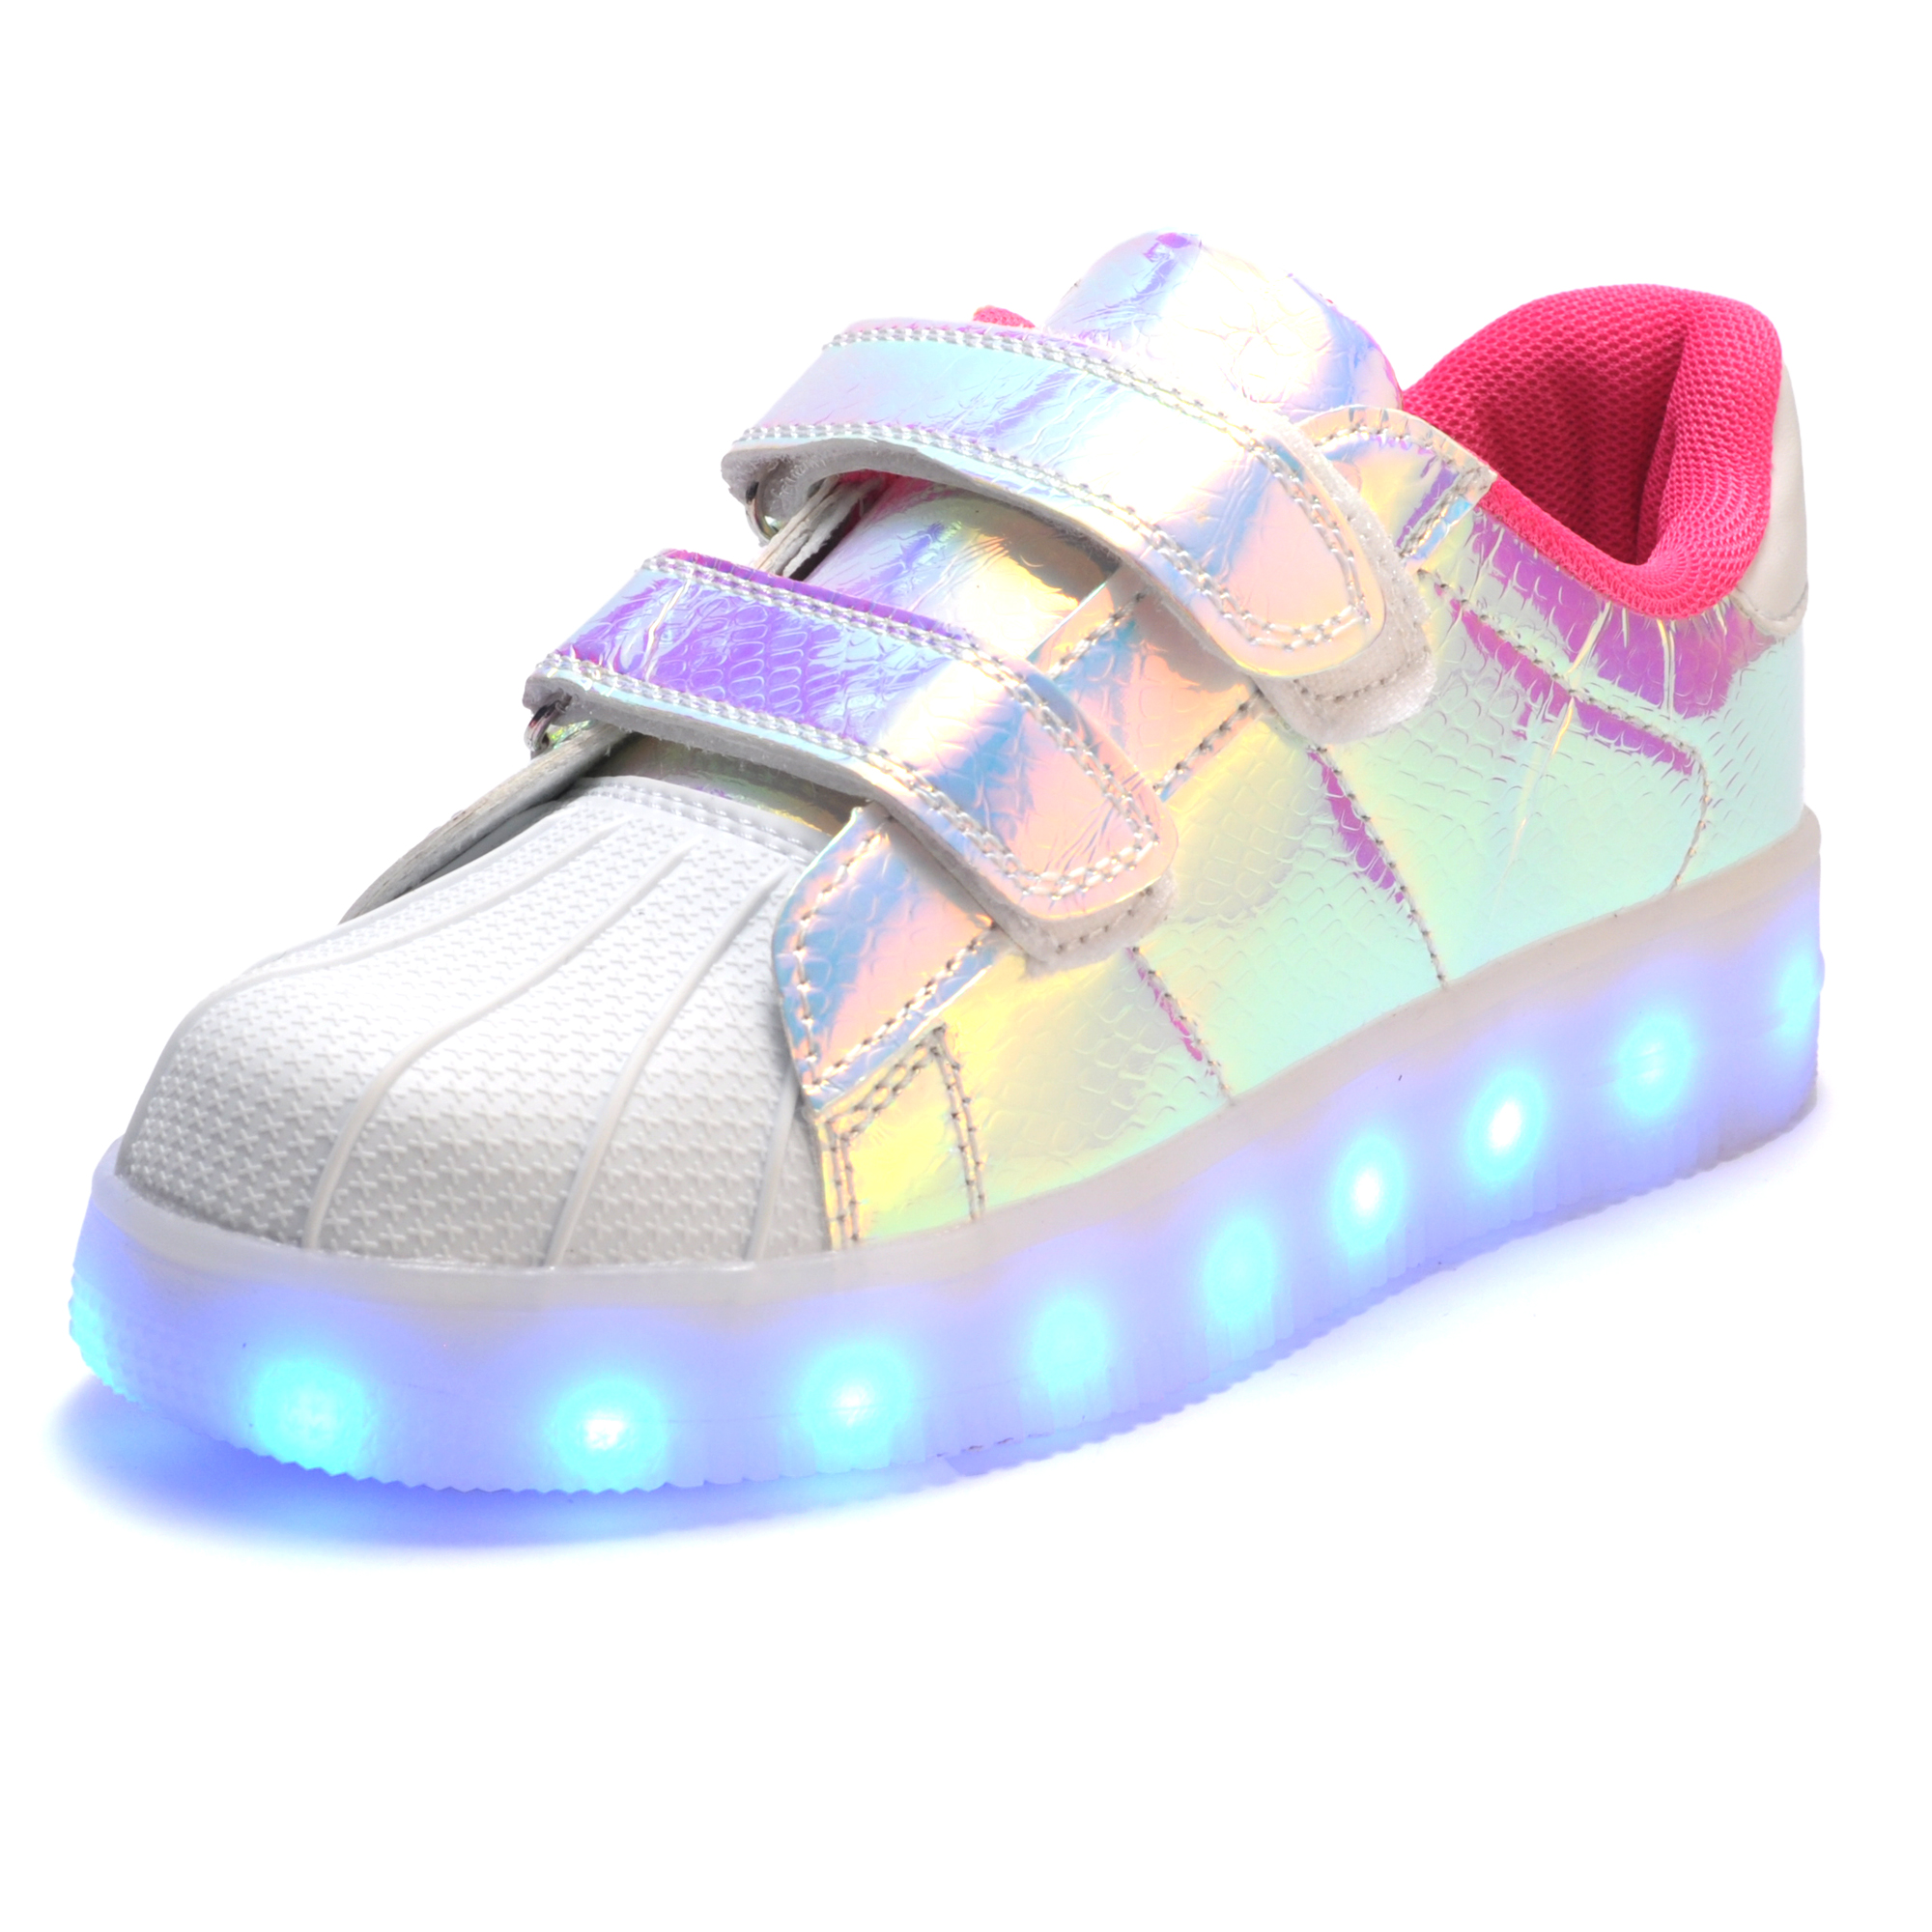 Fashion 7 Colors Kids Sneakers USB Charging Luminous Lighted